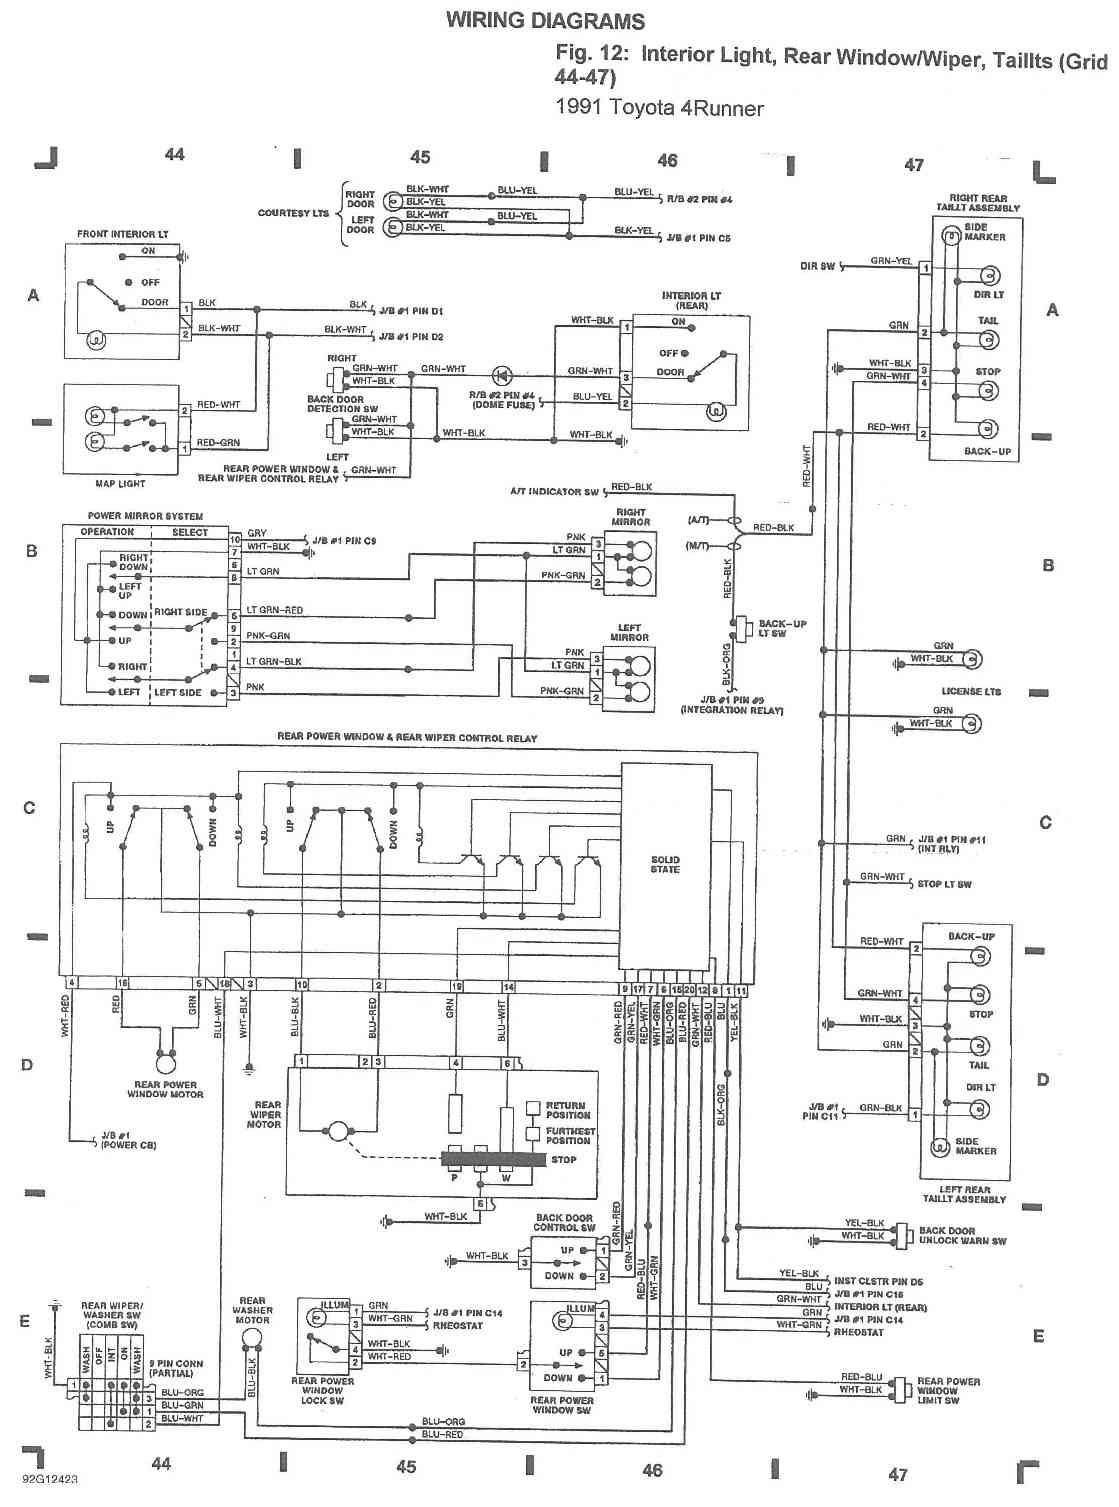 hight resolution of 2004 4runner fuse diagram box wiring diagram2005 4runner fuse box wiring library 2004 toyota 4runner fuse